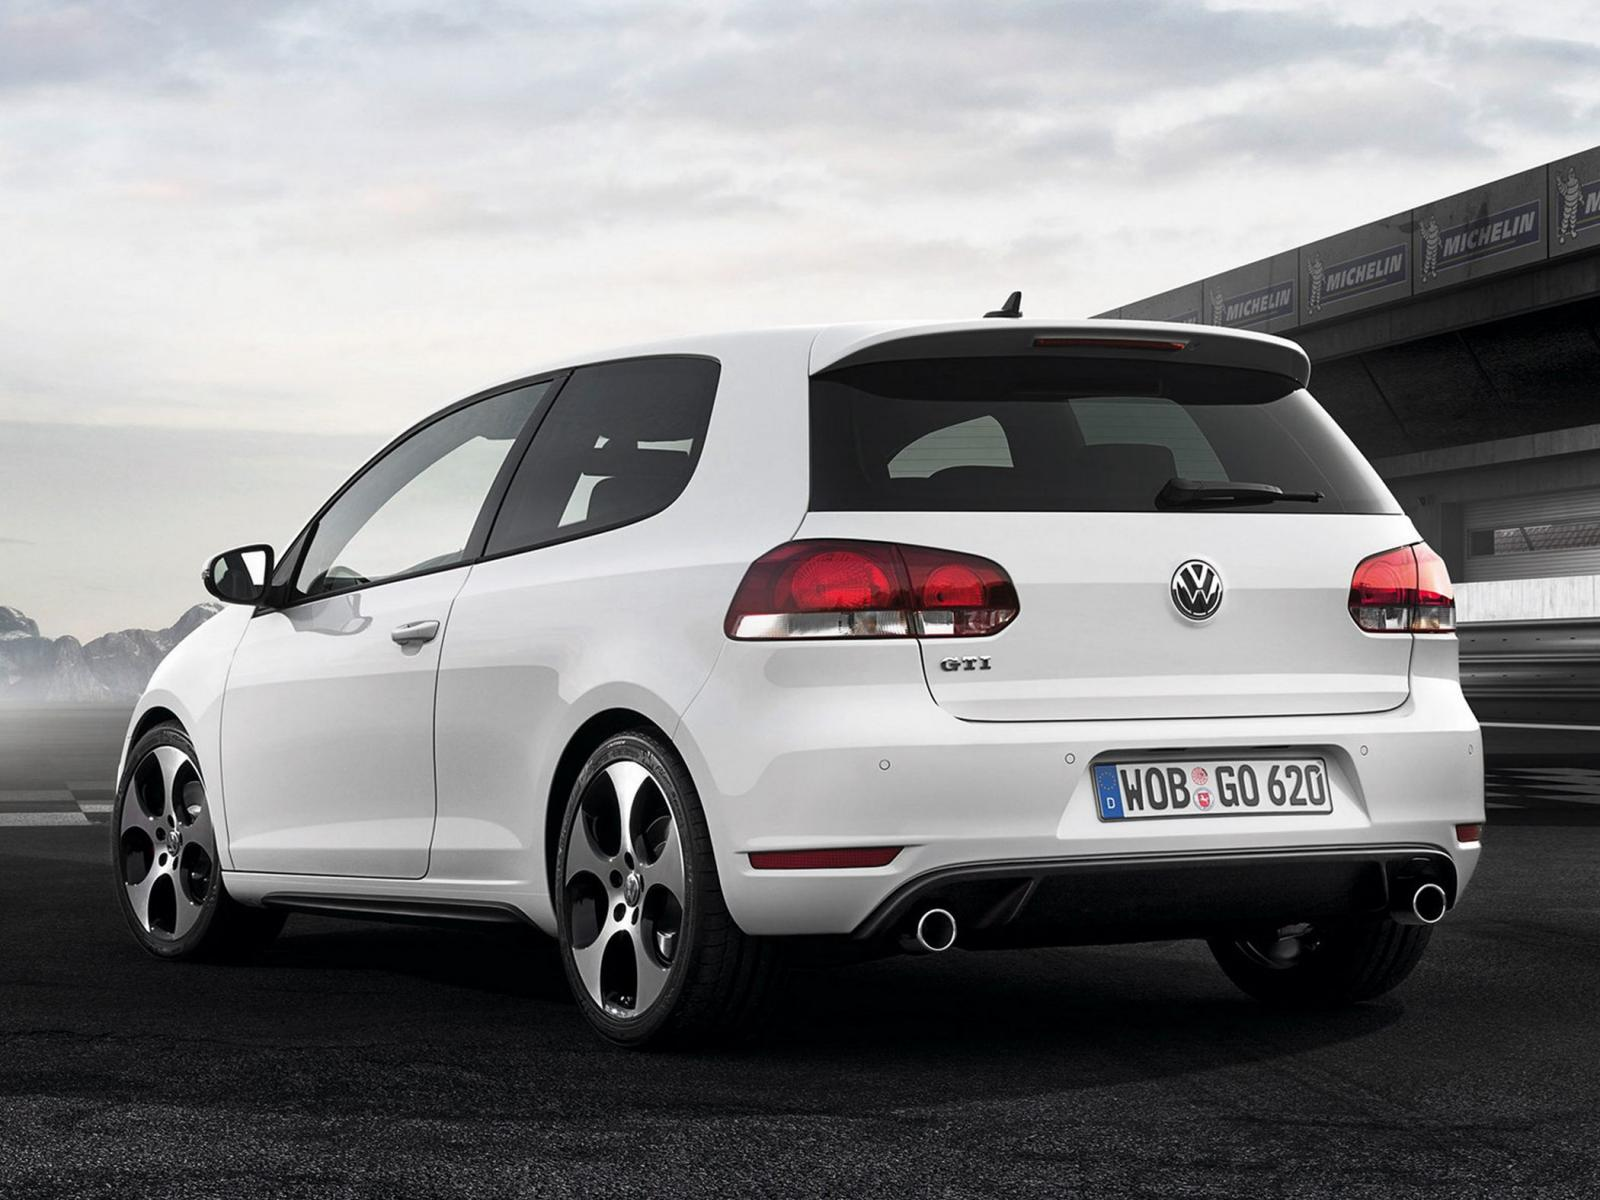 2012 volkswagen gti information and photos zombiedrive. Black Bedroom Furniture Sets. Home Design Ideas